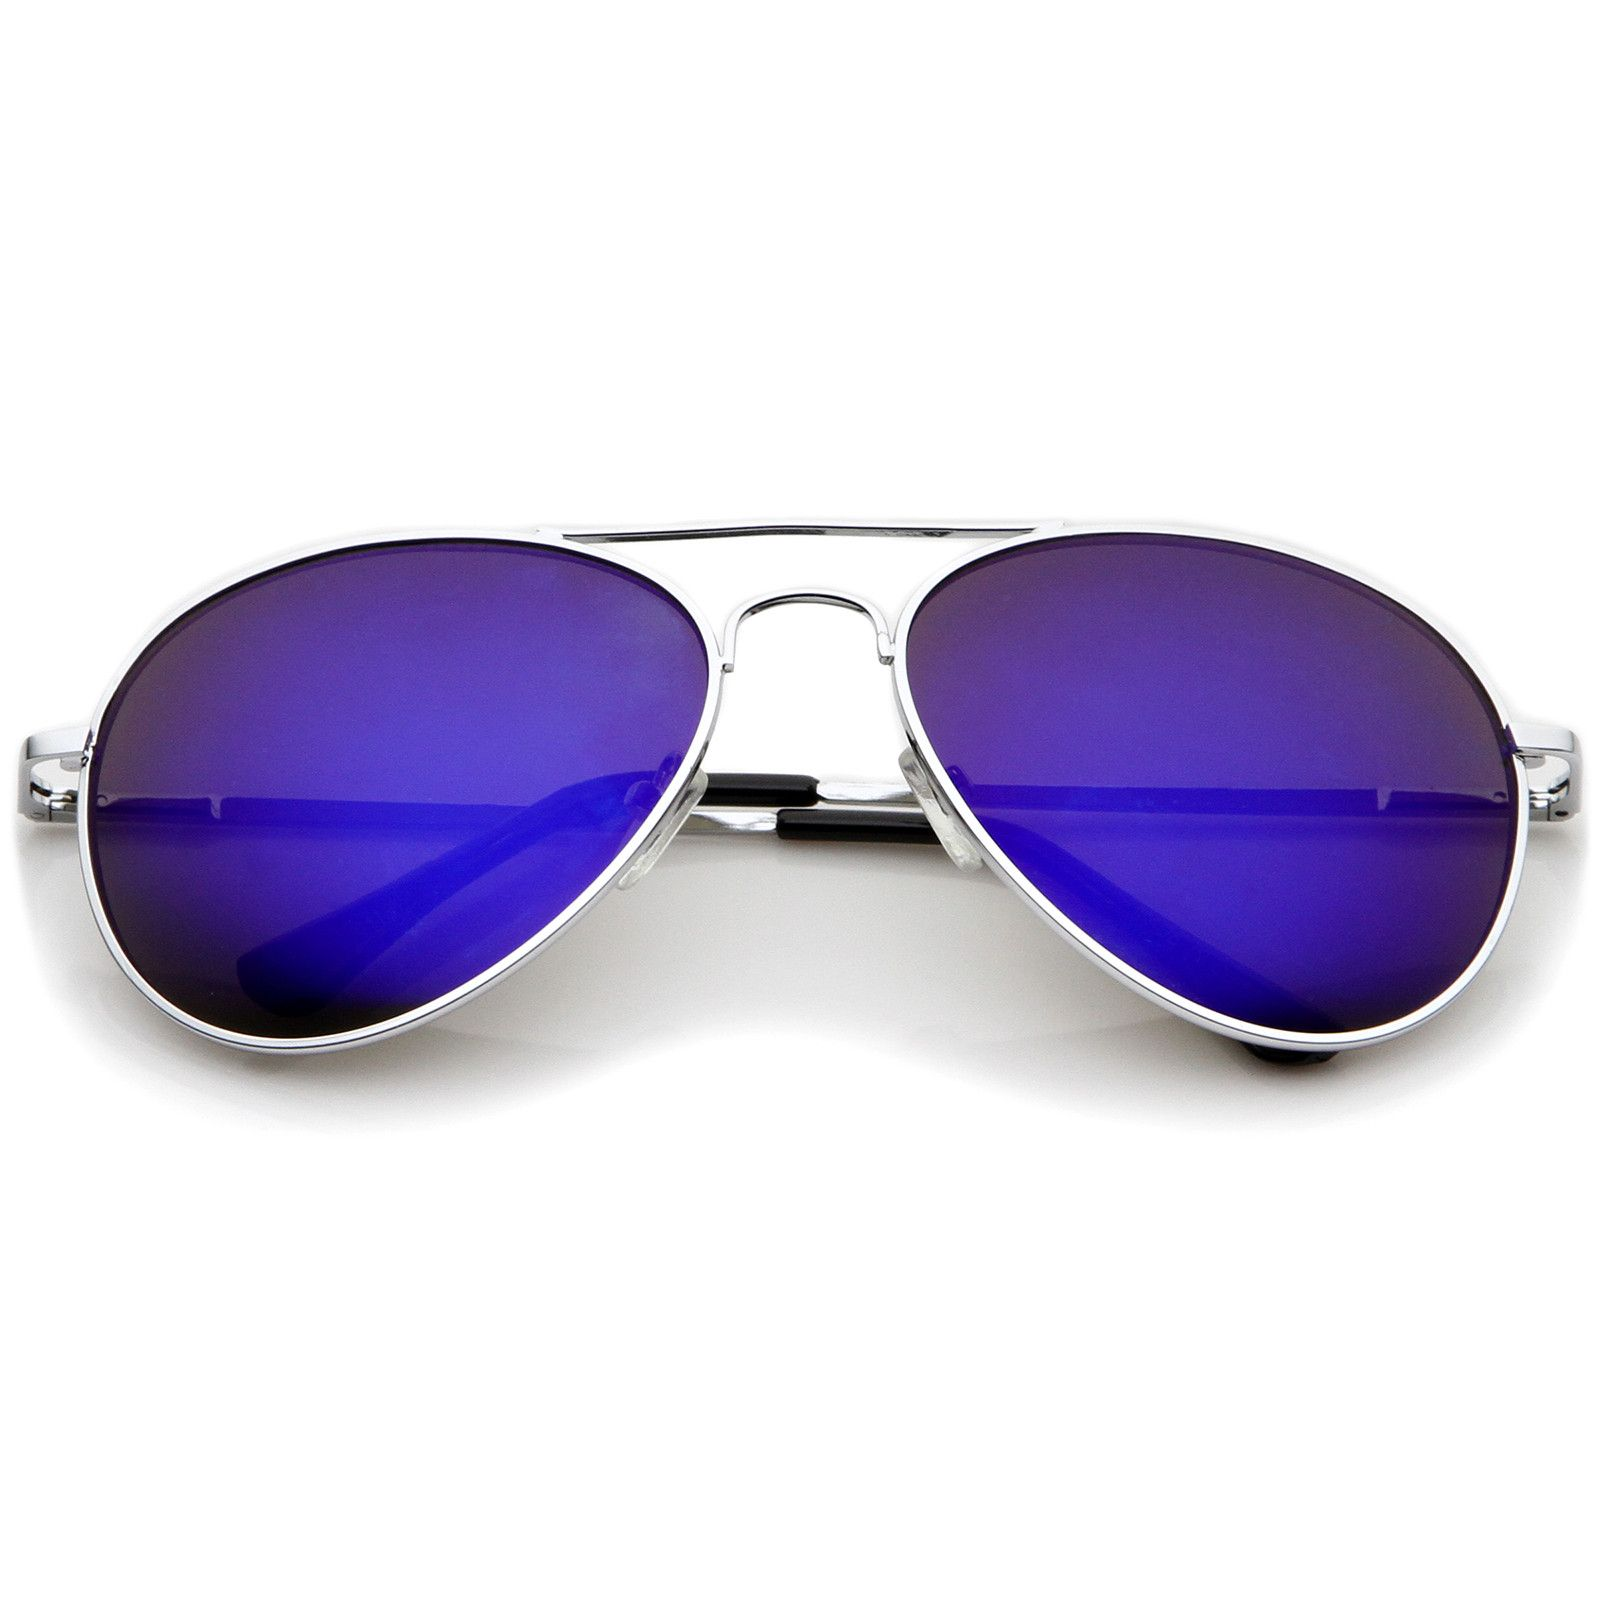 5ea6388778b Classic Metal Frame Spring Hinges Color Mirror Lens Aviator Sunglasses 56mm   frame  bold  sunglasses  oversized  sunglass  summer  womens  purple ...